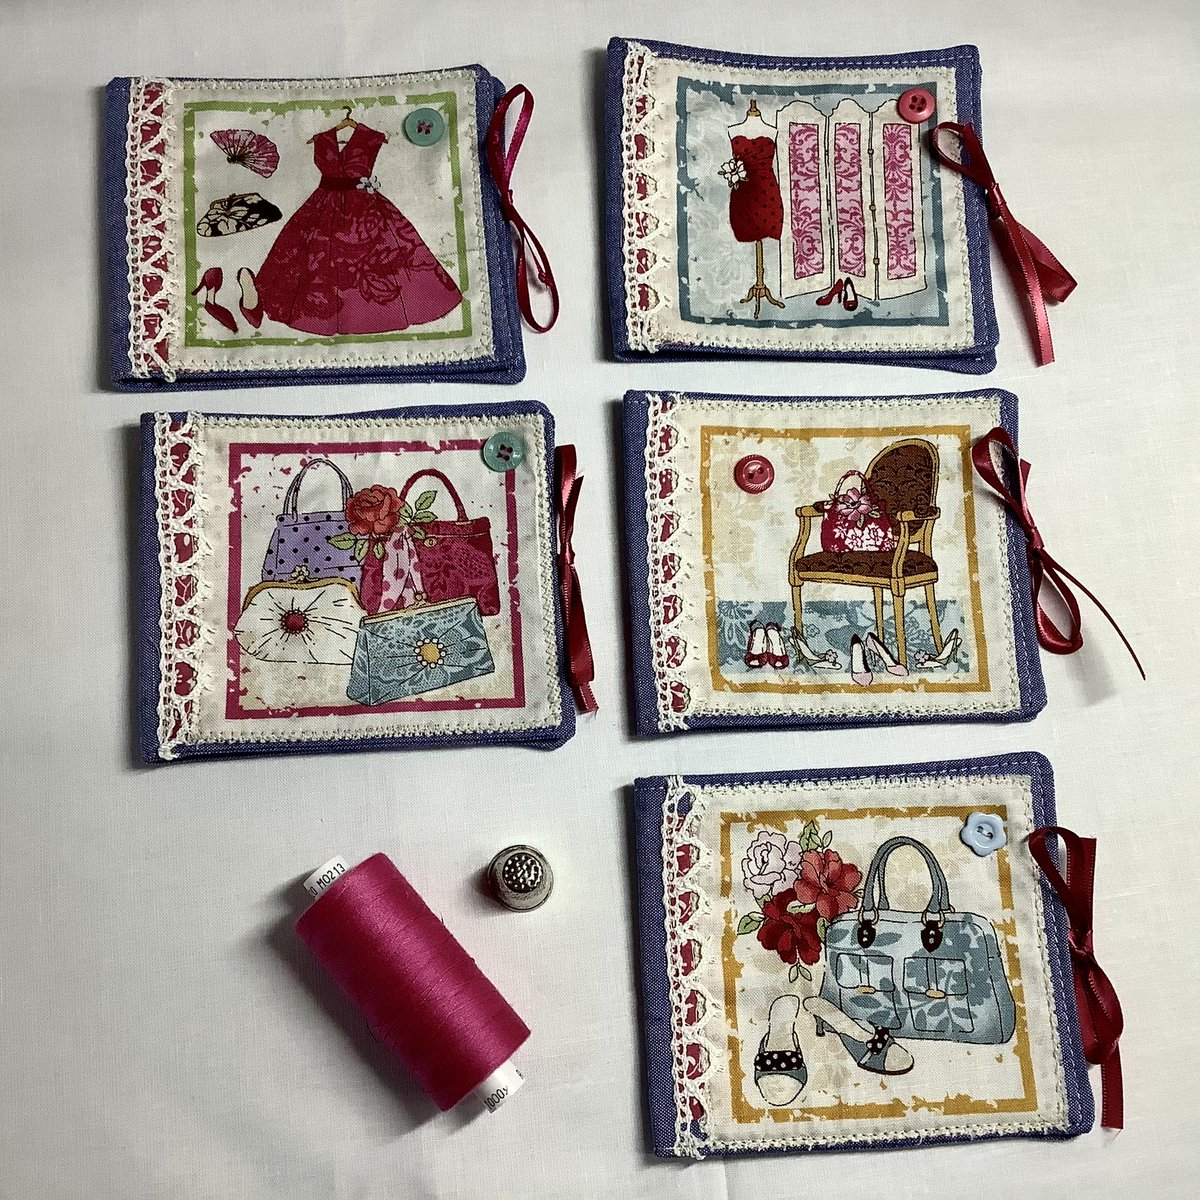 New listing #pretty #needlebooks just about to join my #etsyshop #girly #christmasgiftidea #handmade #HandmadeHour   Take a peek 😍💃💃💃 https://t.co/dHdFEptxTk